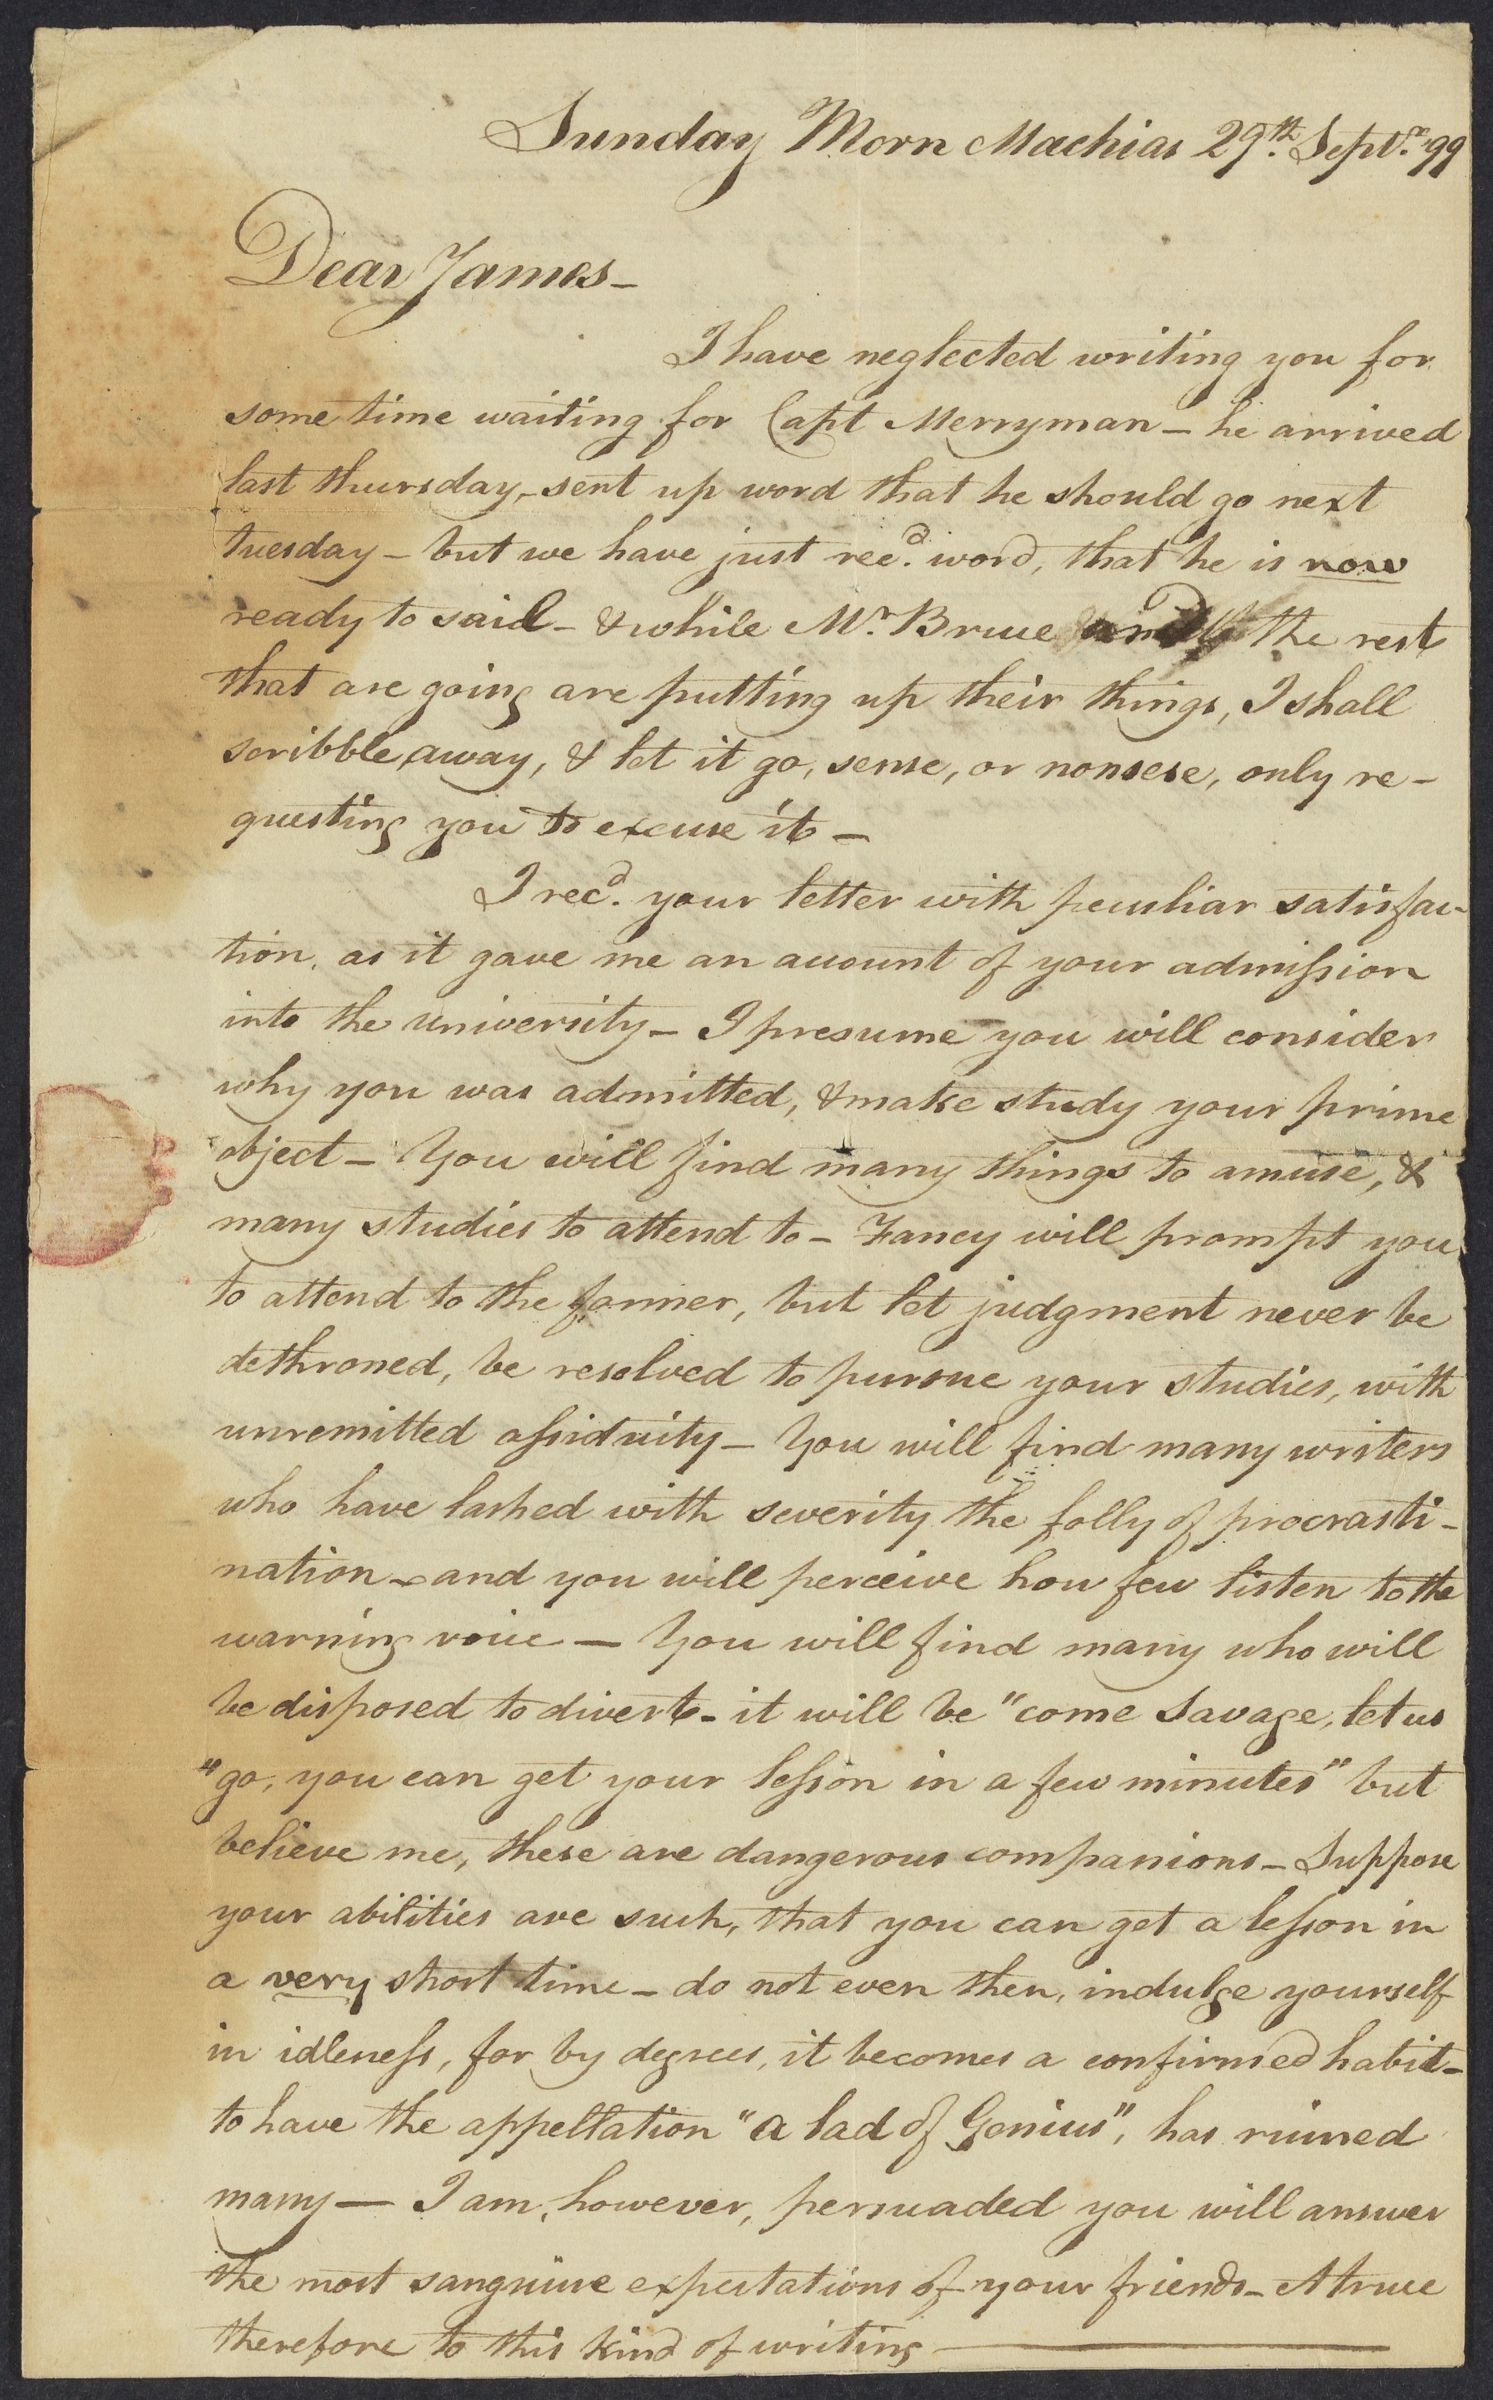 Letter from Daniel Upton to James Savage, 1799 September 29